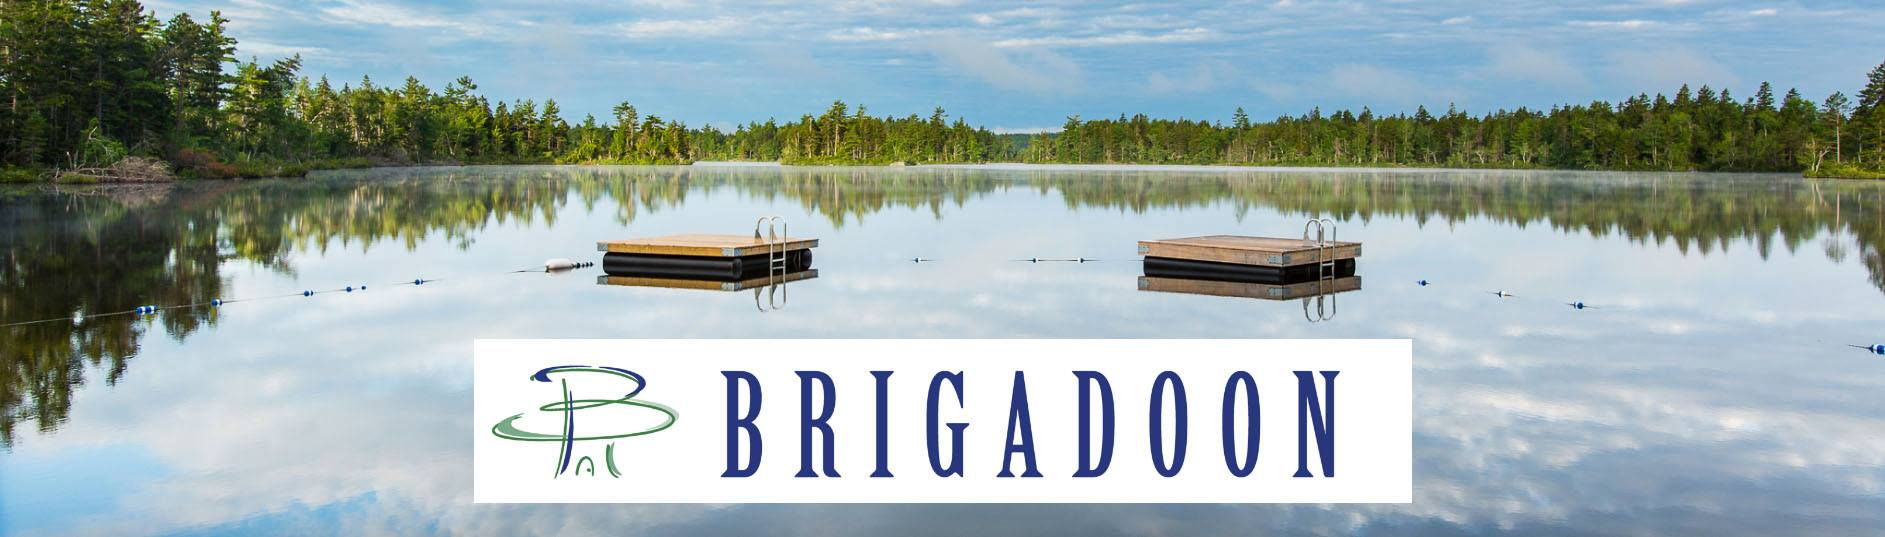 Camp Brigadoon 2018 Pictures